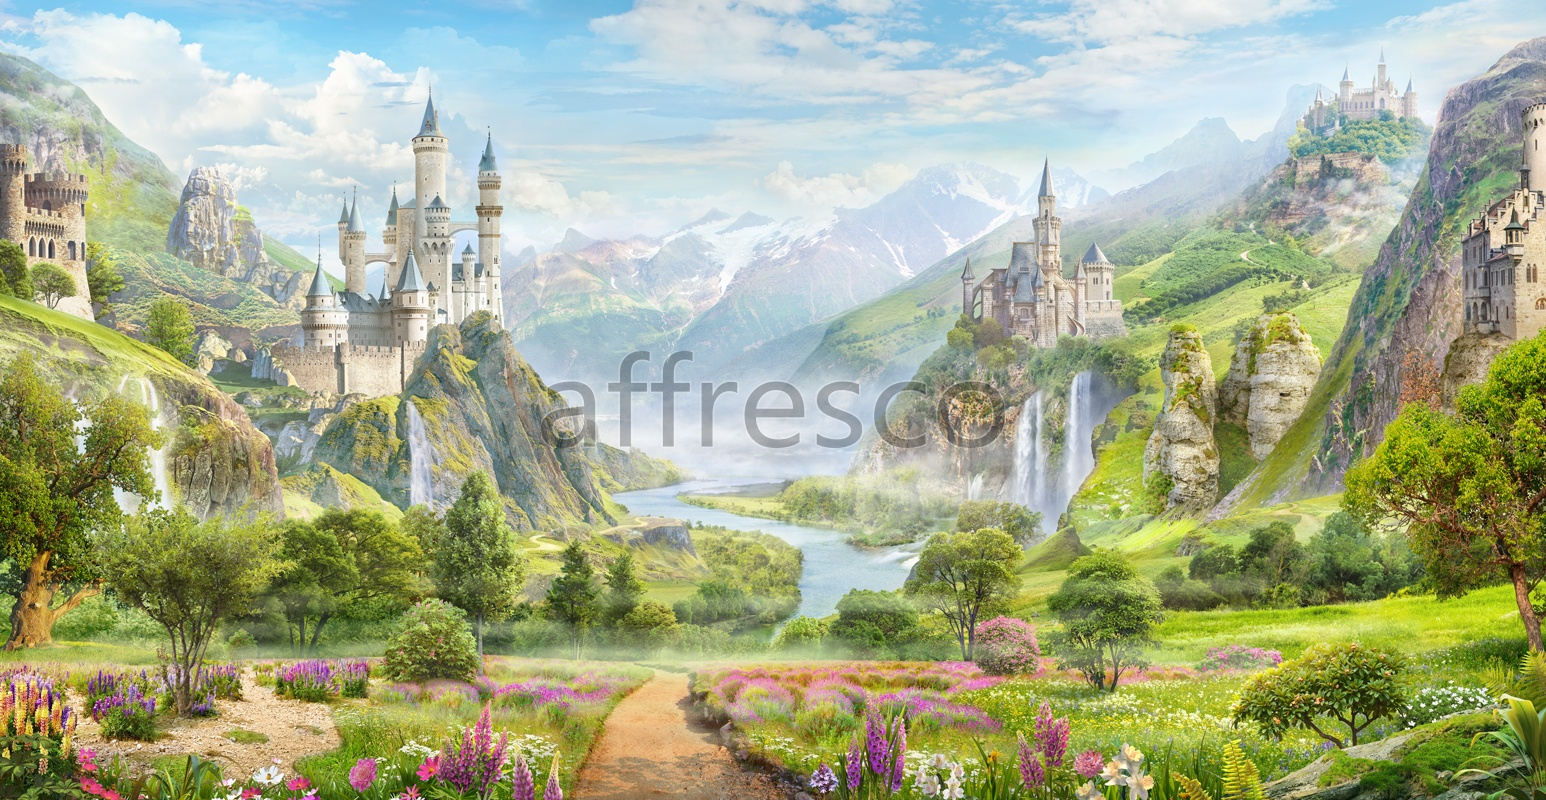 6552 | The best landscapes | Valley of castles | Affresco Factory